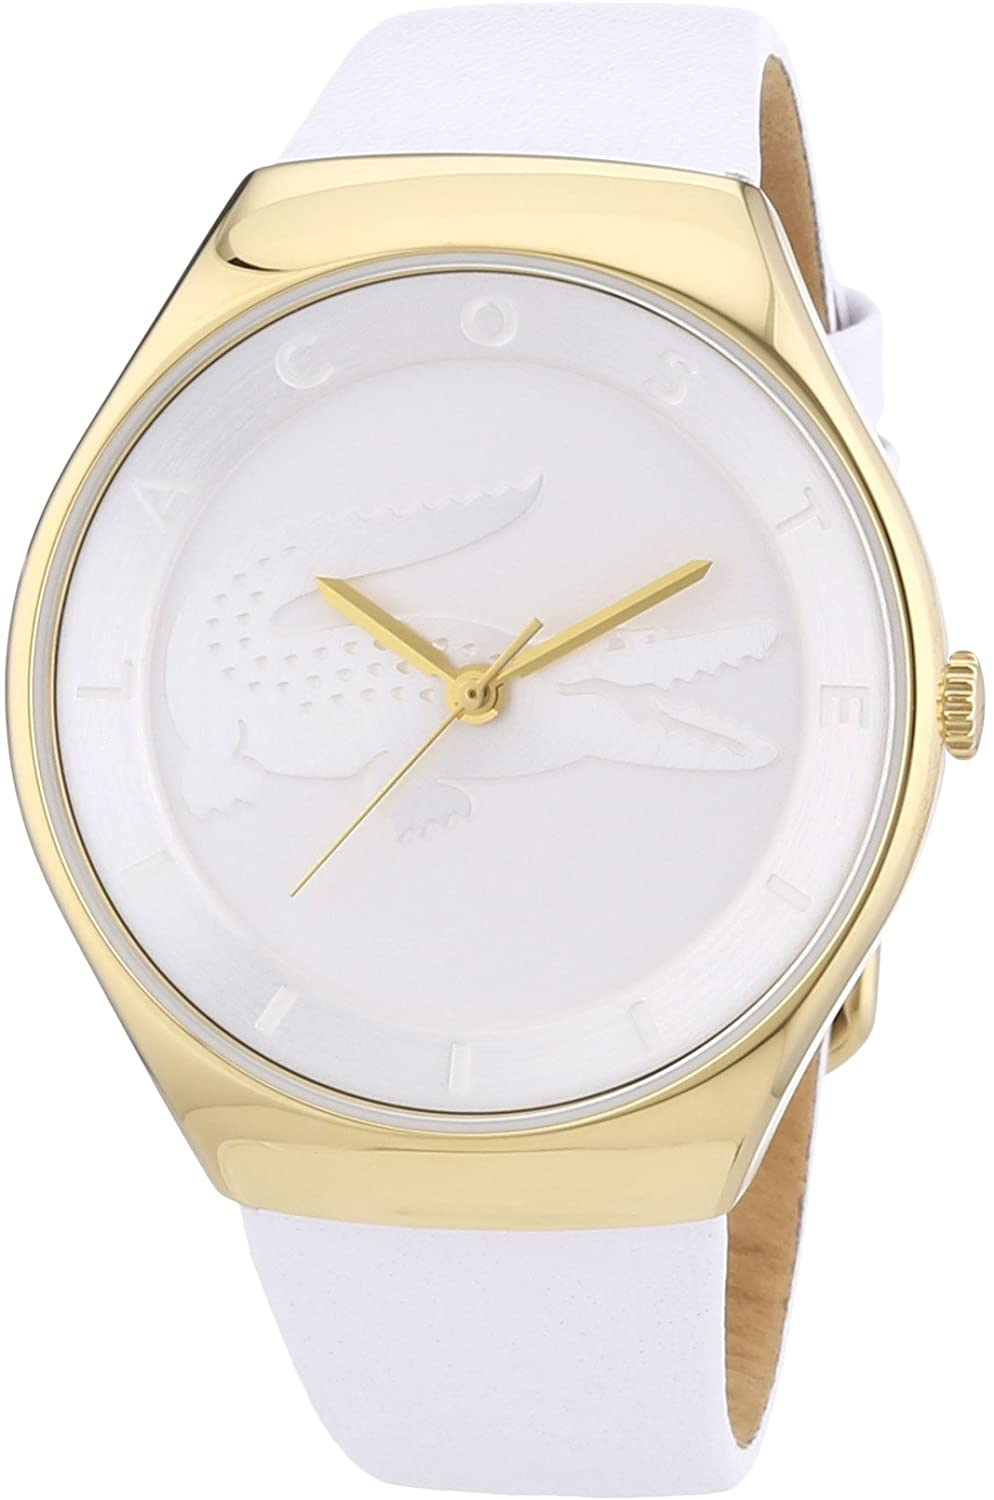 Lacoste 2000763–Watch for Women, White Leather Strap